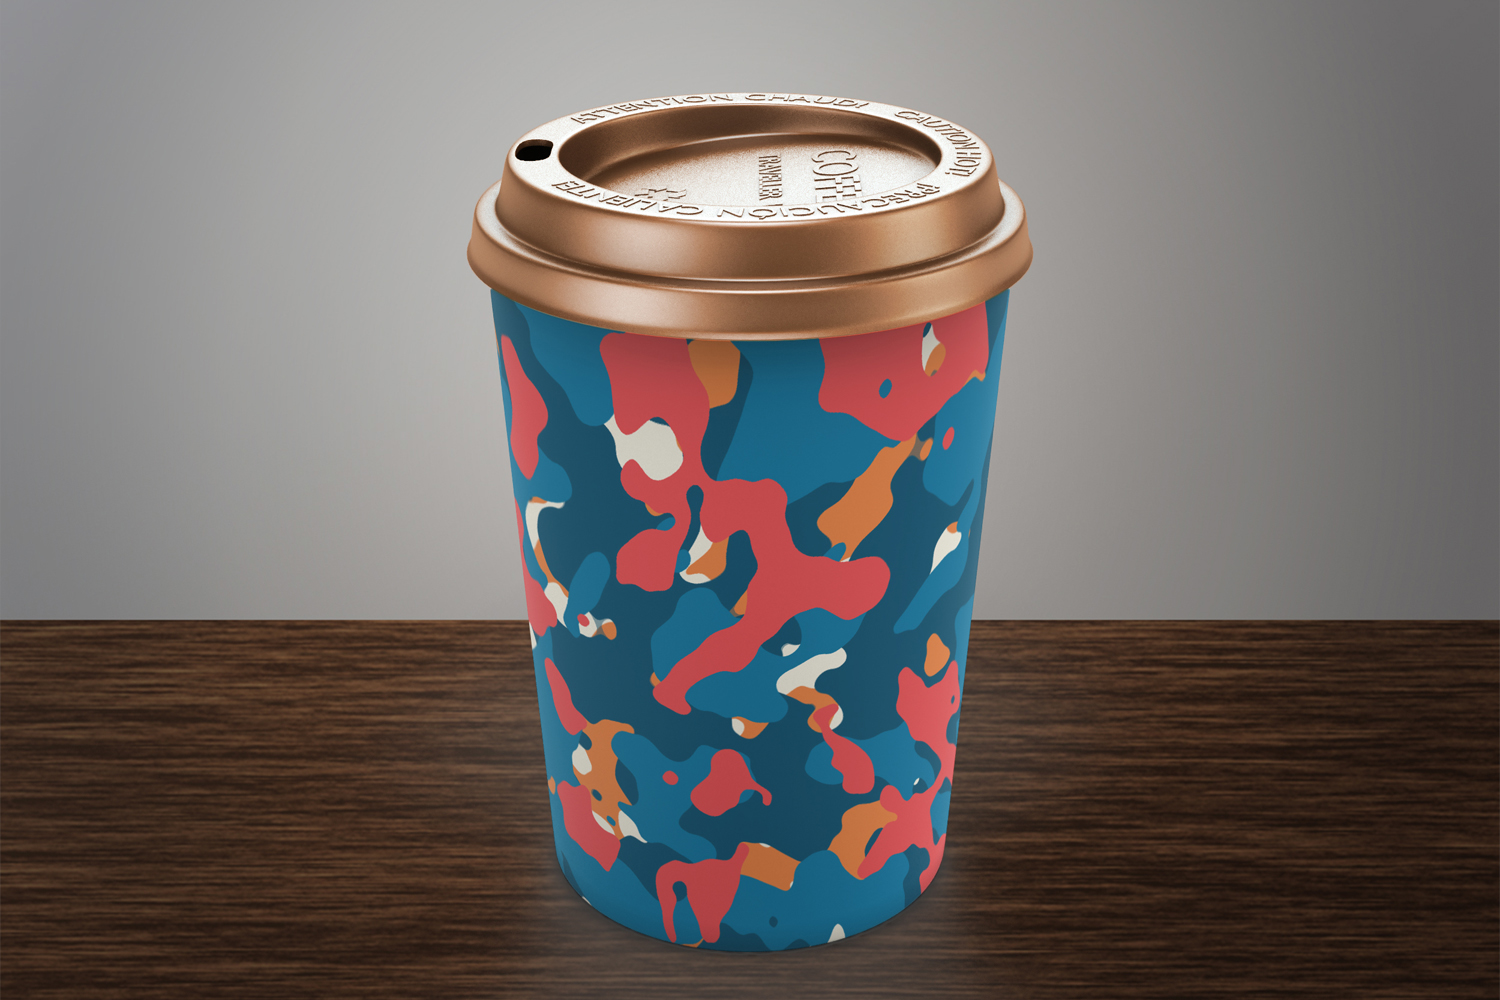 40 Alternative Camouflage Paper Designs example image 23